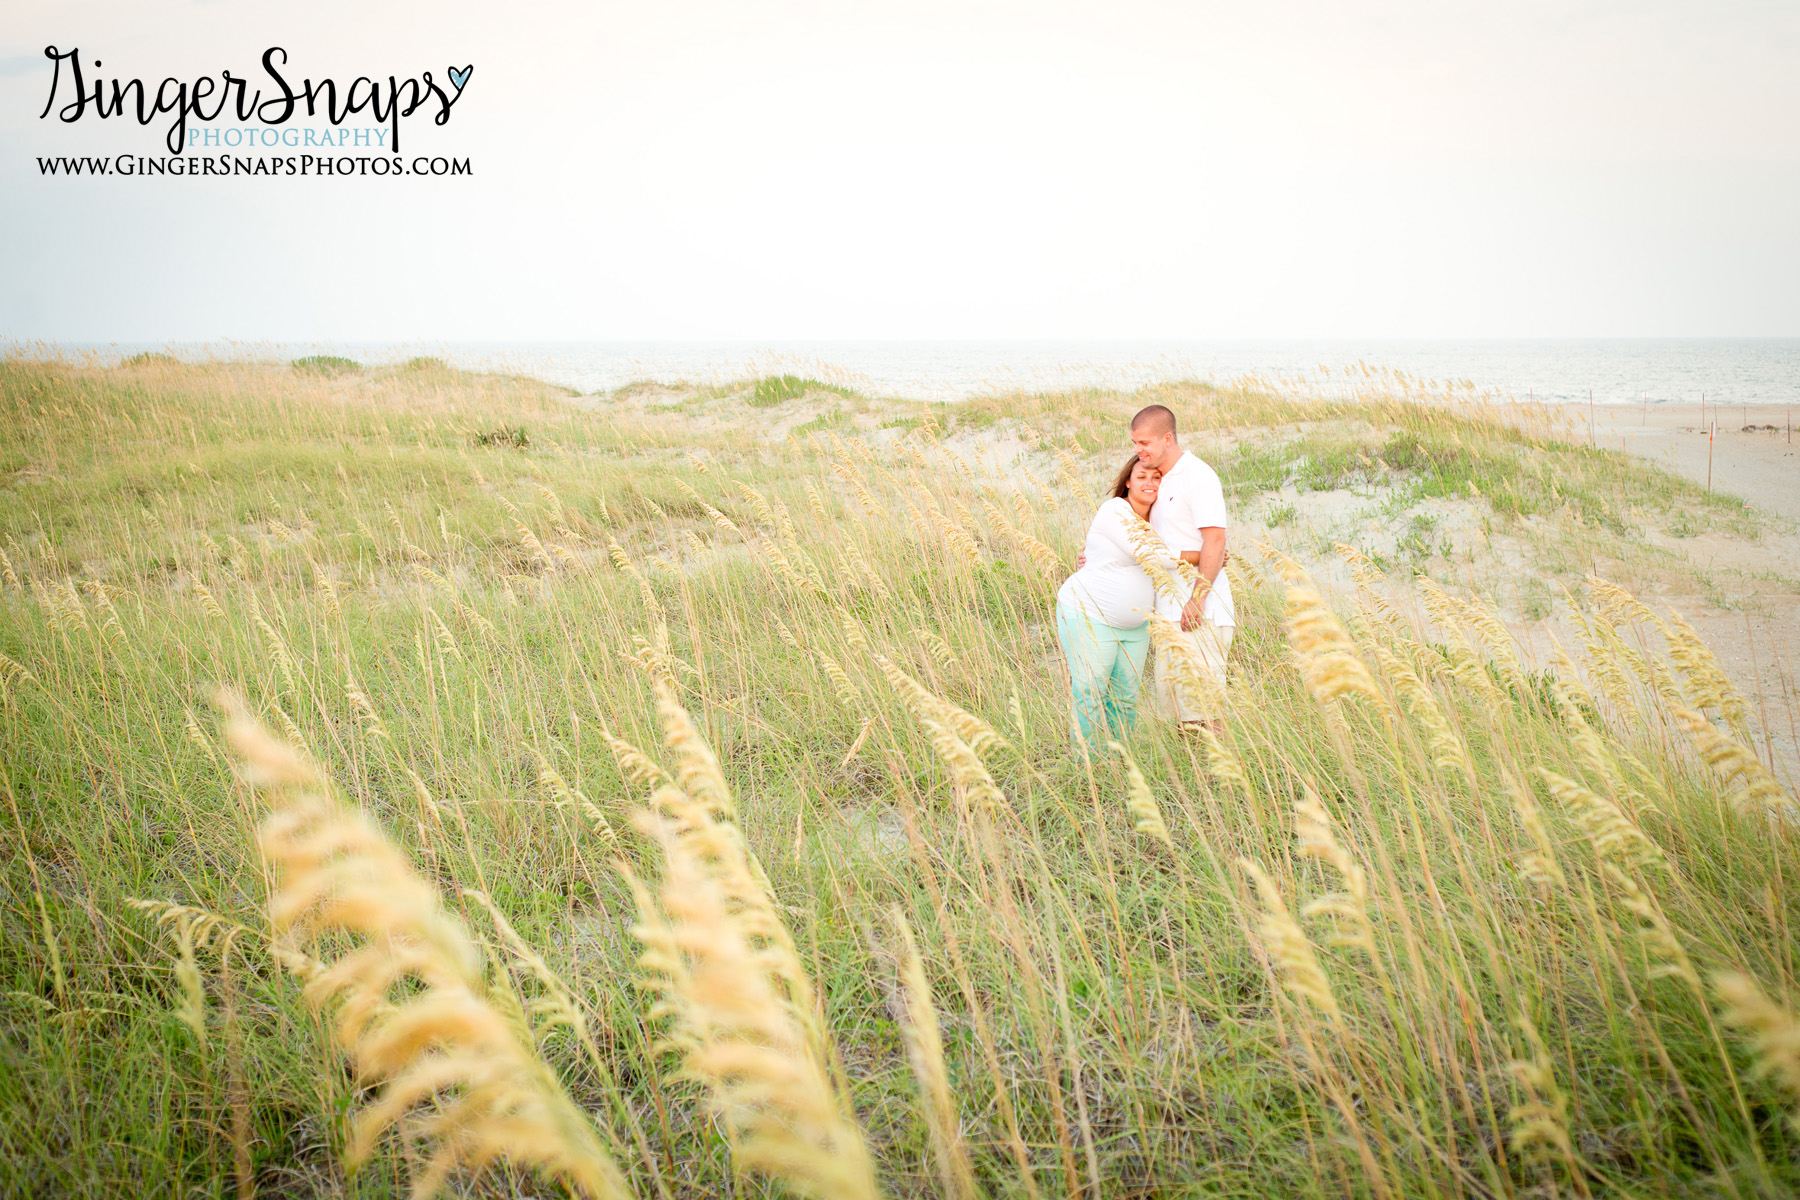 GingerSnaps Photography - 63